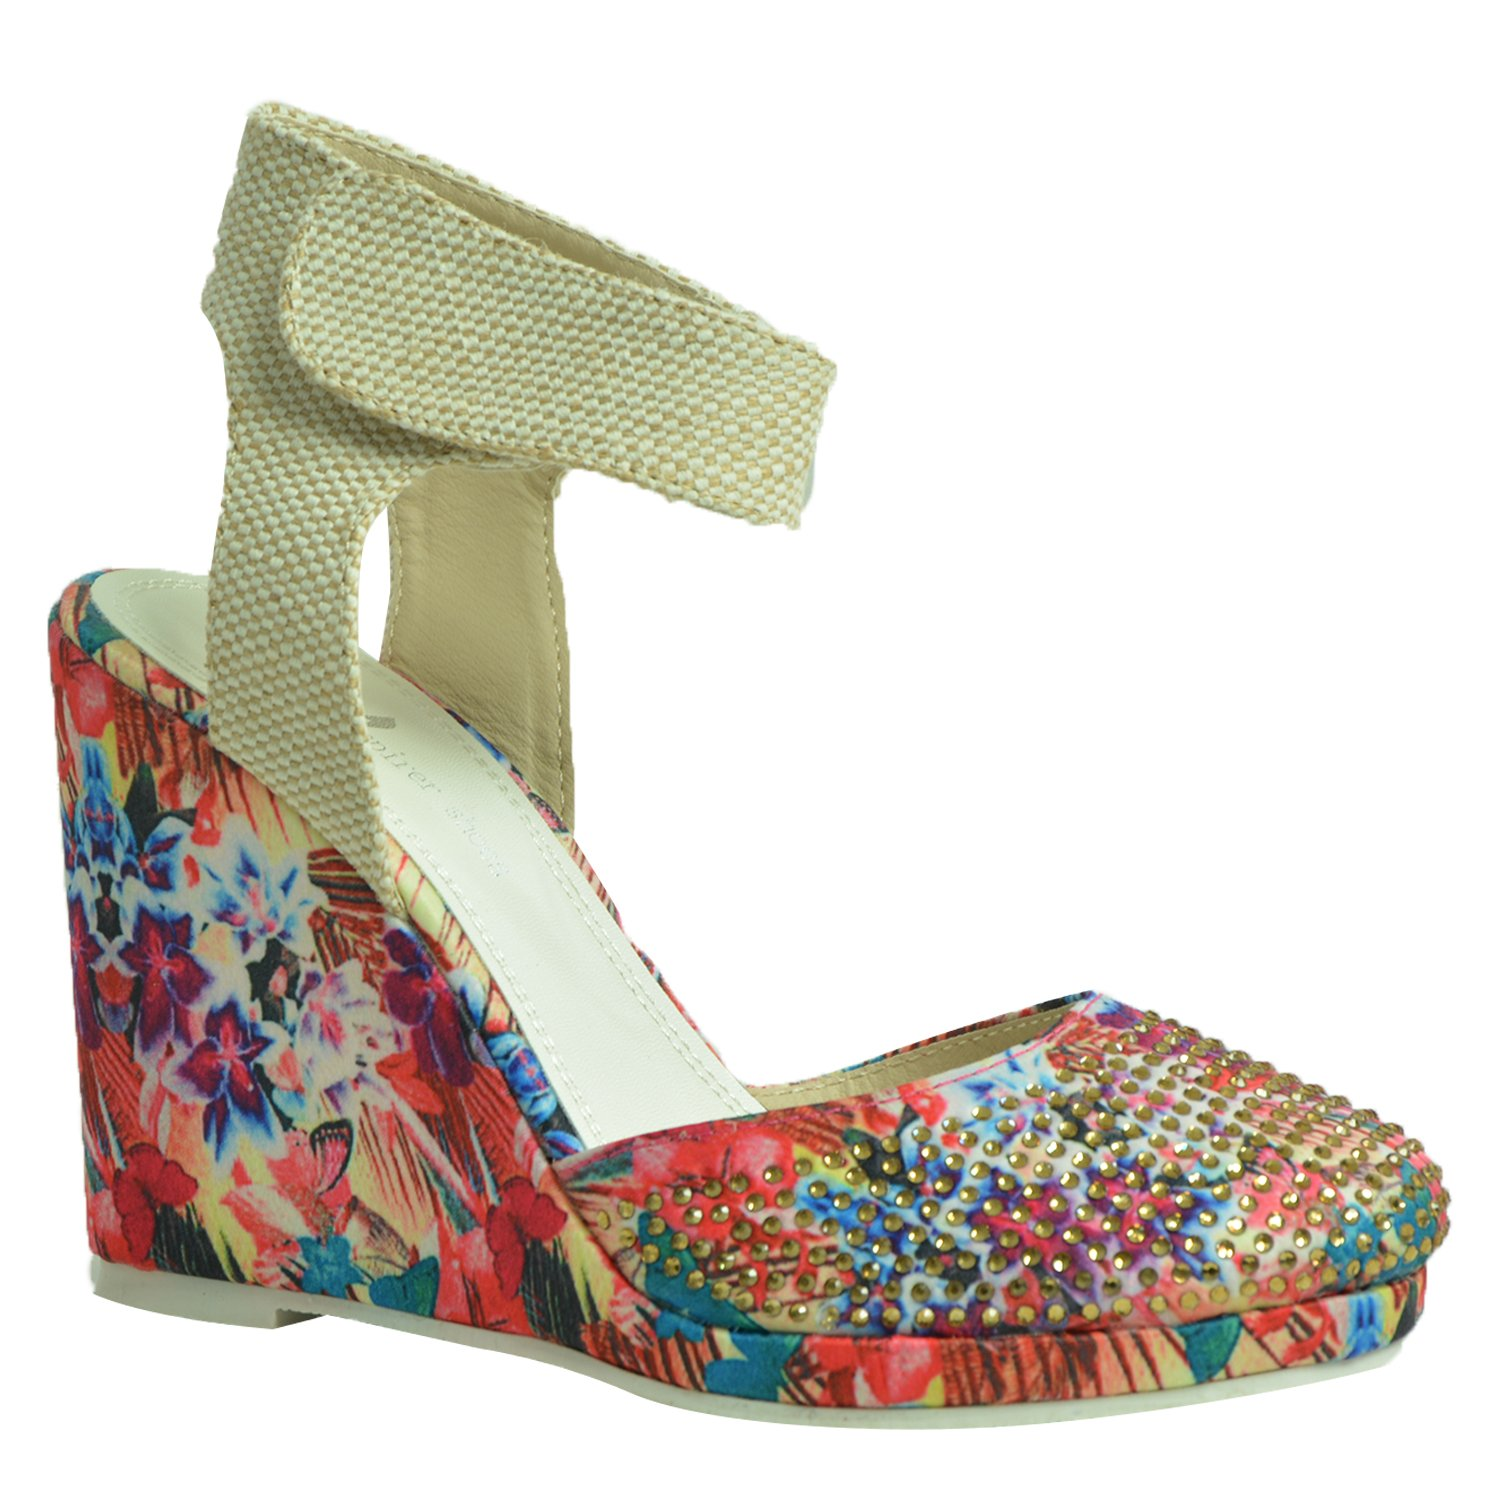 Ladies Womens Wedge Pumps Ankle Strap High Heels Platform Party Shoes Size Uk